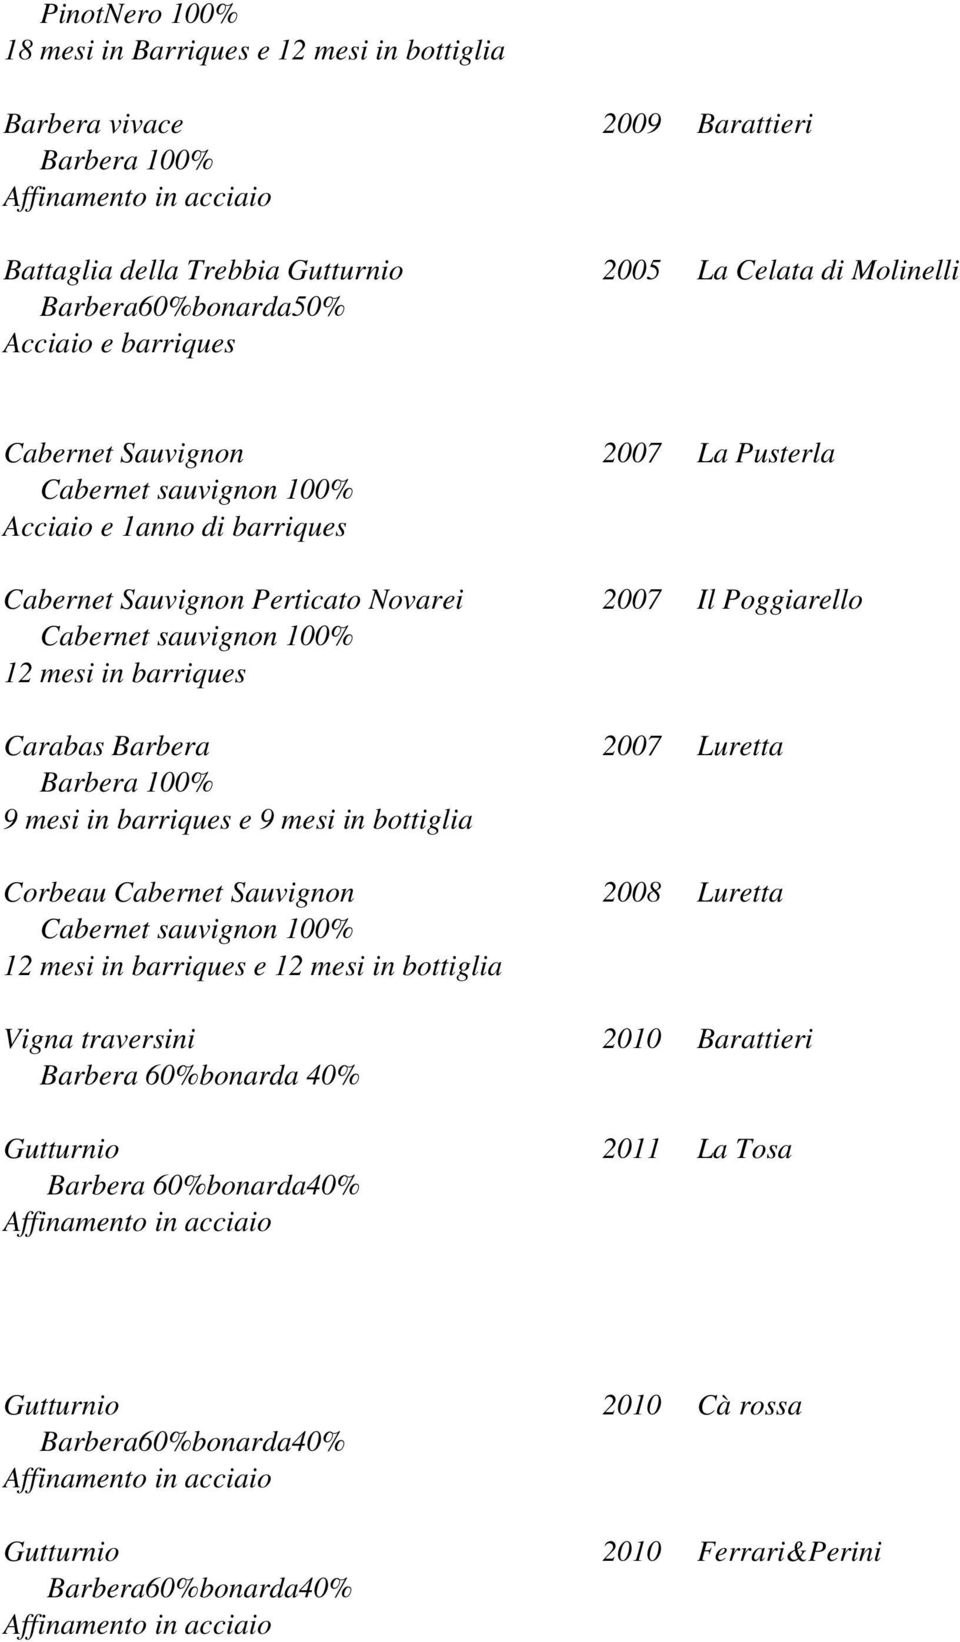 100% 12 mesi in barriques Carabas Barbera 2007 Luretta Barbera 100% 9 mesi in barriques e 9 mesi in bottiglia Corbeau Cabernet Sauvignon 2008 Luretta Cabernet sauvignon 100% 12 mesi in